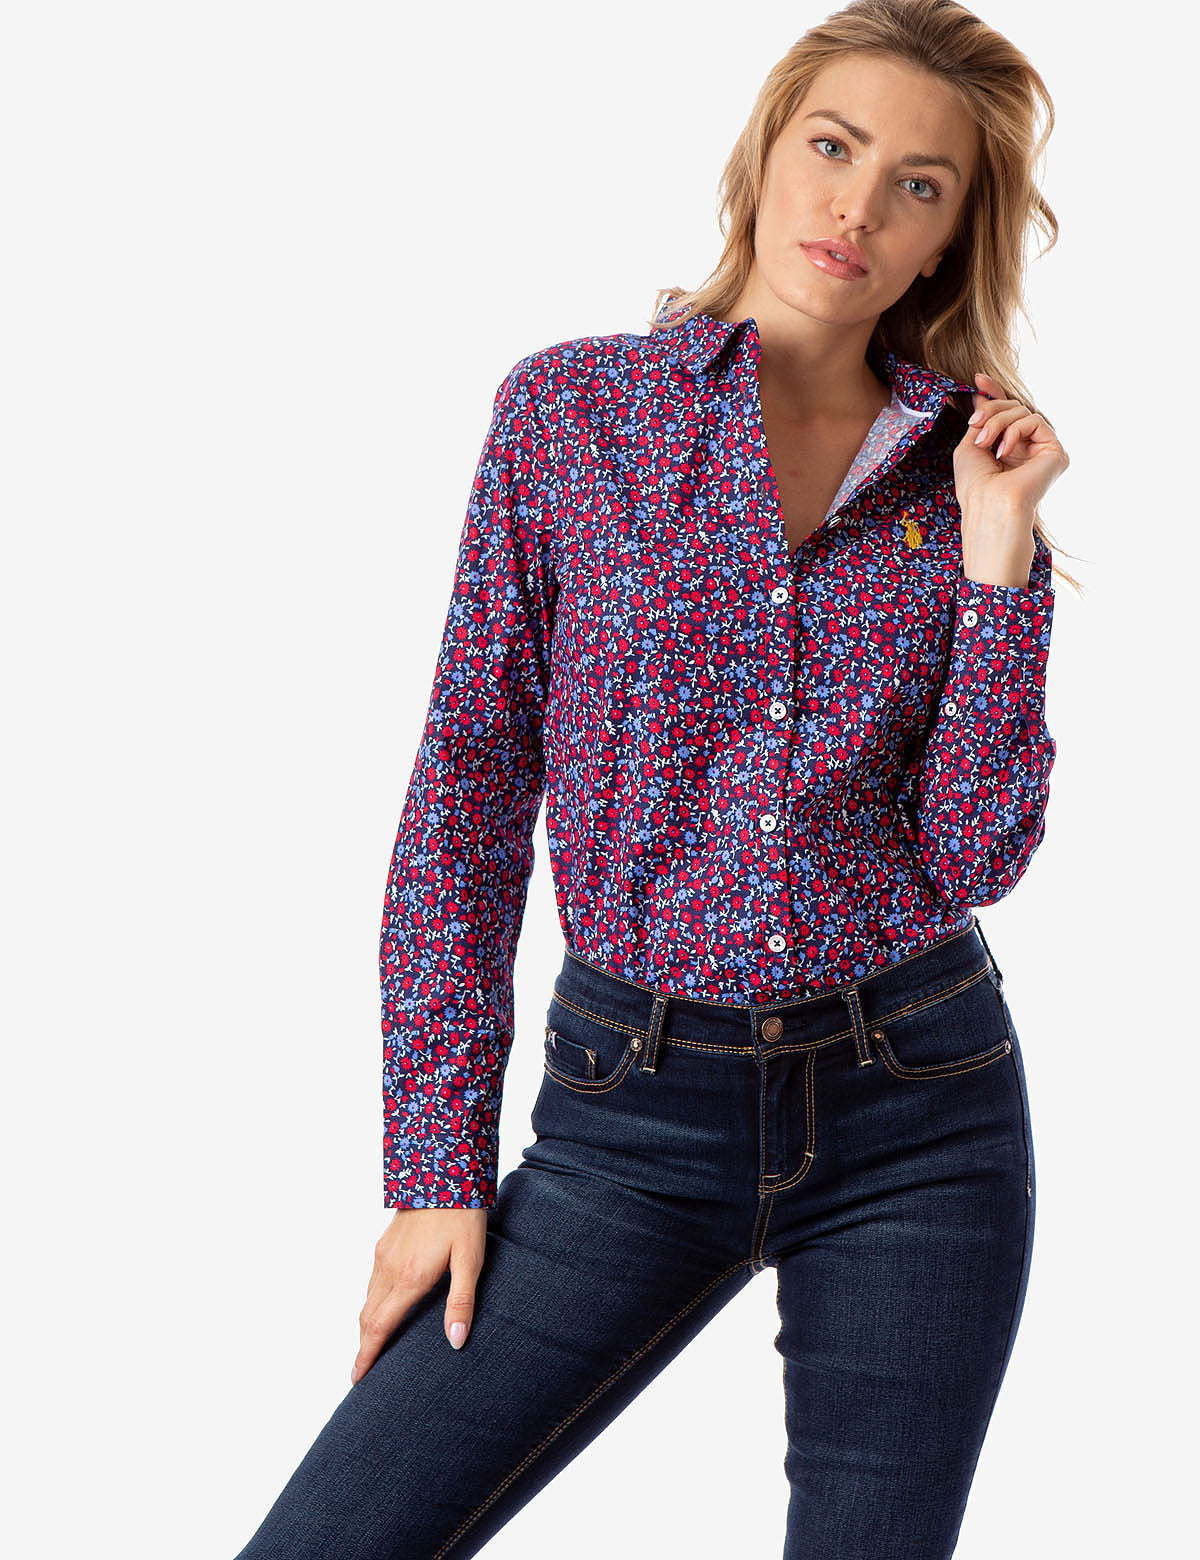 ALL OVER FLORAL PRINT POPLIN SHIRT - U.S. Polo Assn.